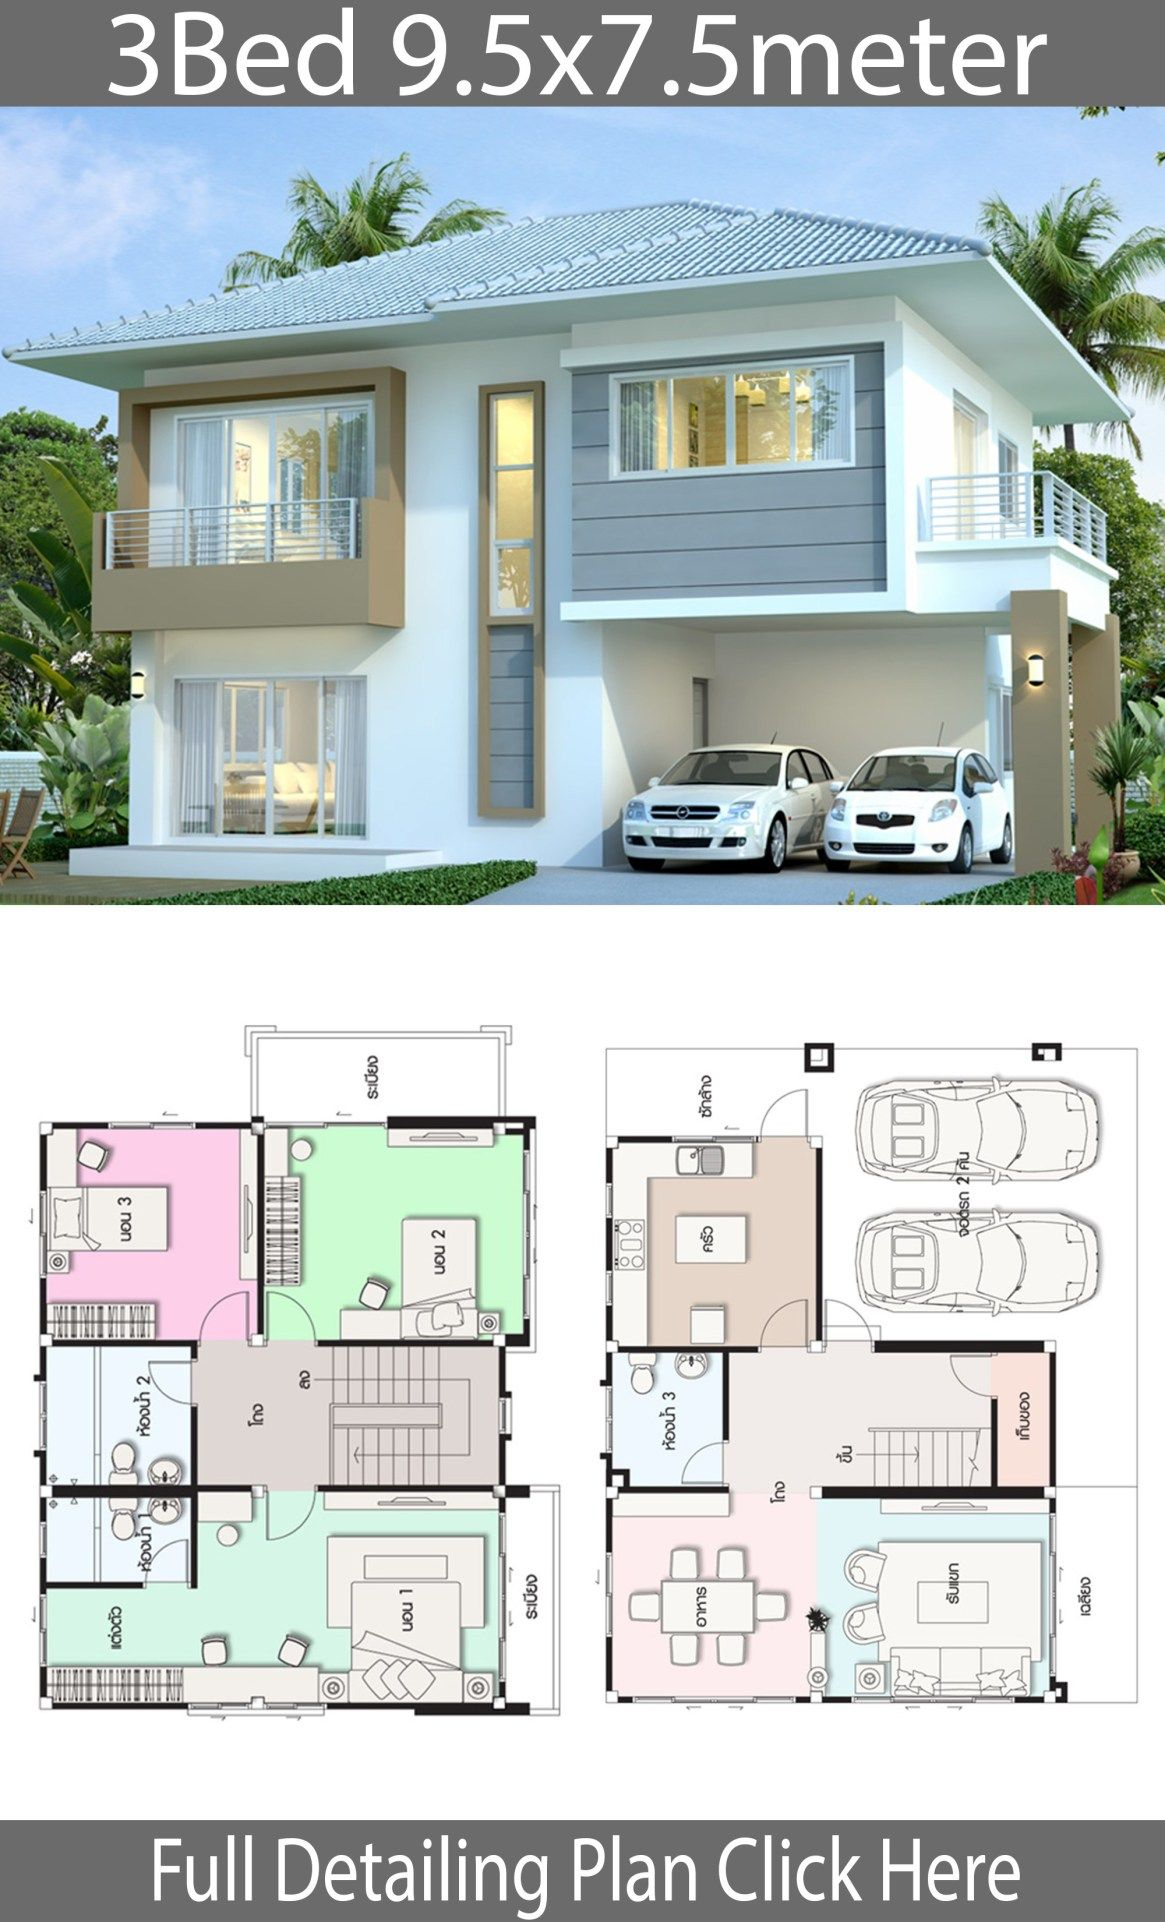 House Design Plan 9 5x7 5m With 3 Bedrooms Home Design With Plansearch Model House Plan Home Design Plans House Architecture Design